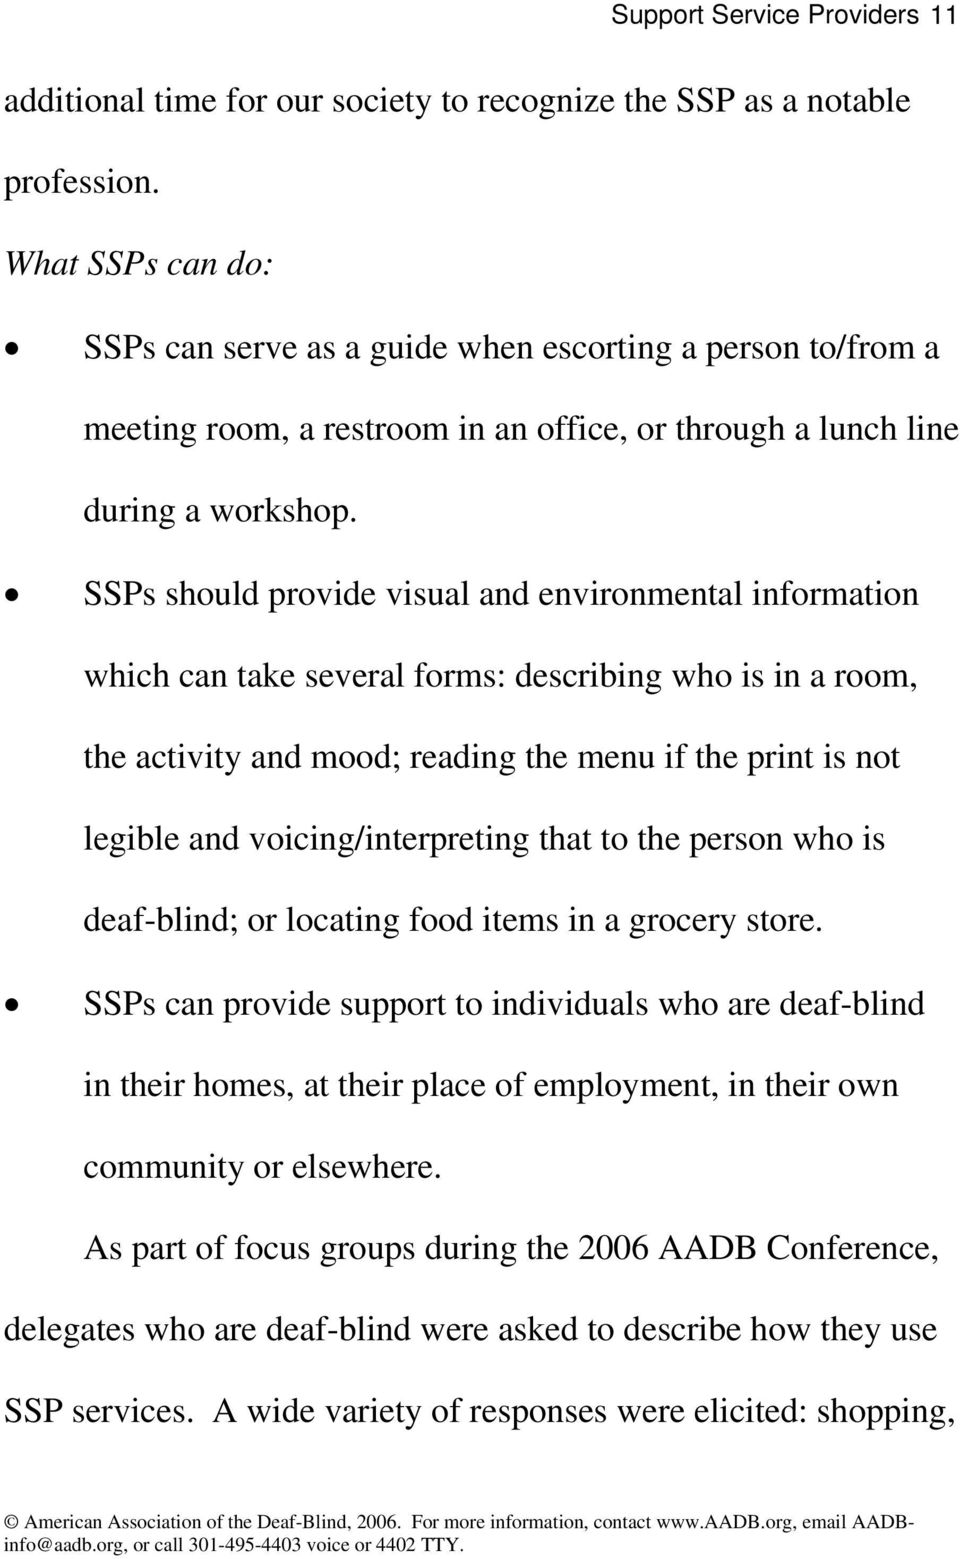 SSPs should provide visual and environmental information which can take several forms: describing who is in a room, the activity and mood; reading the menu if the print is not legible and